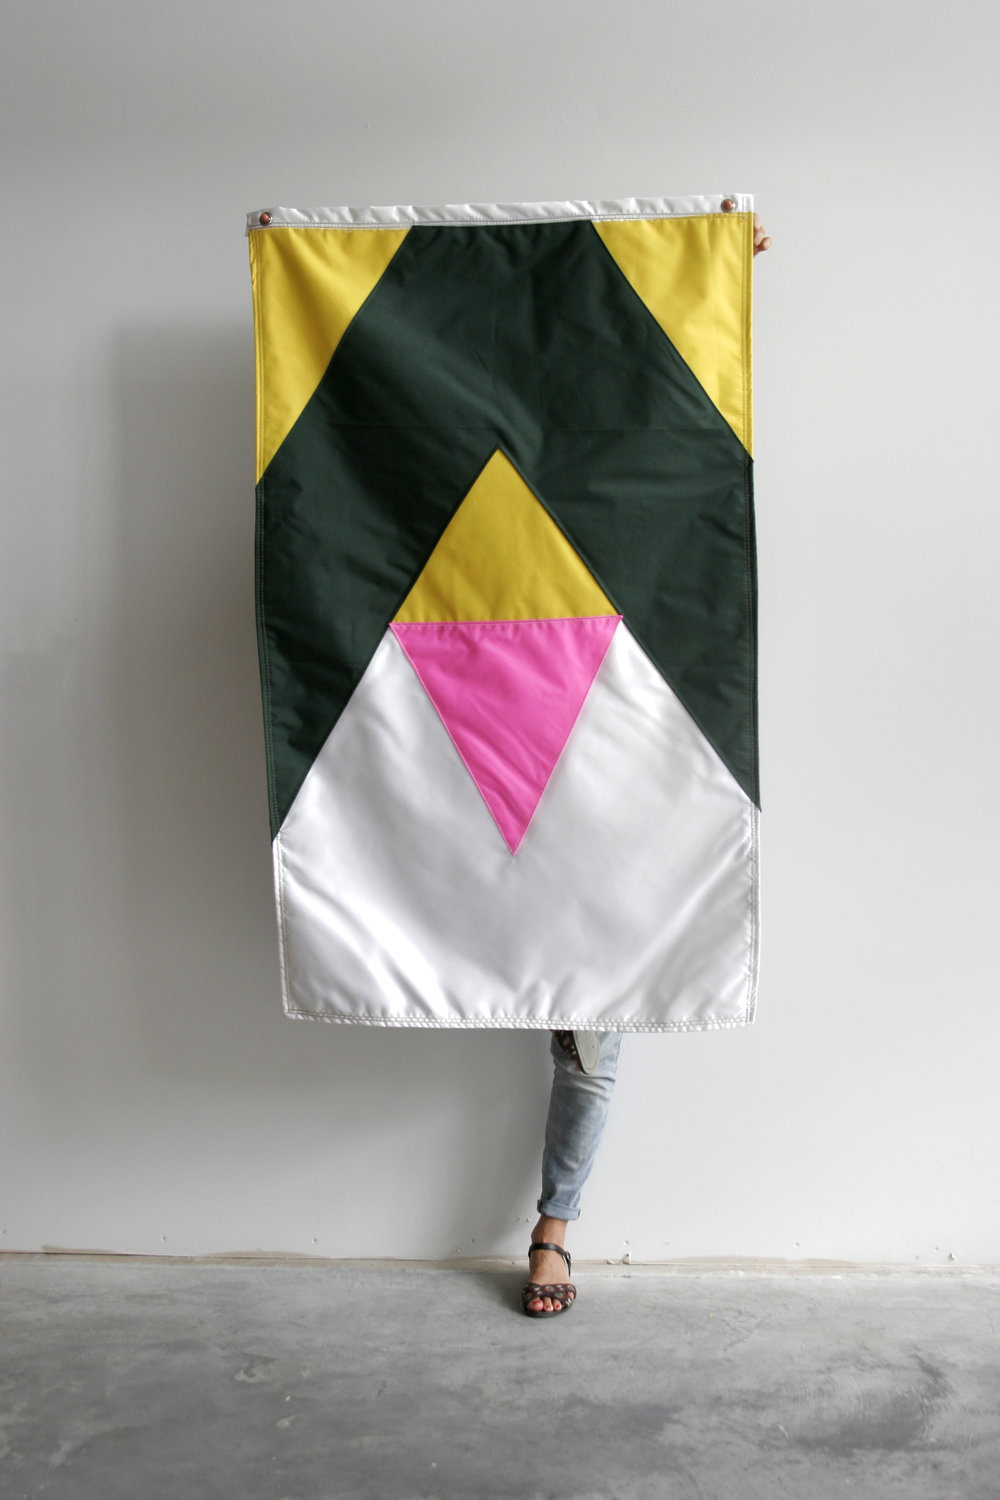 Cristina Victor - My Story Is My Flag #2nylon flag